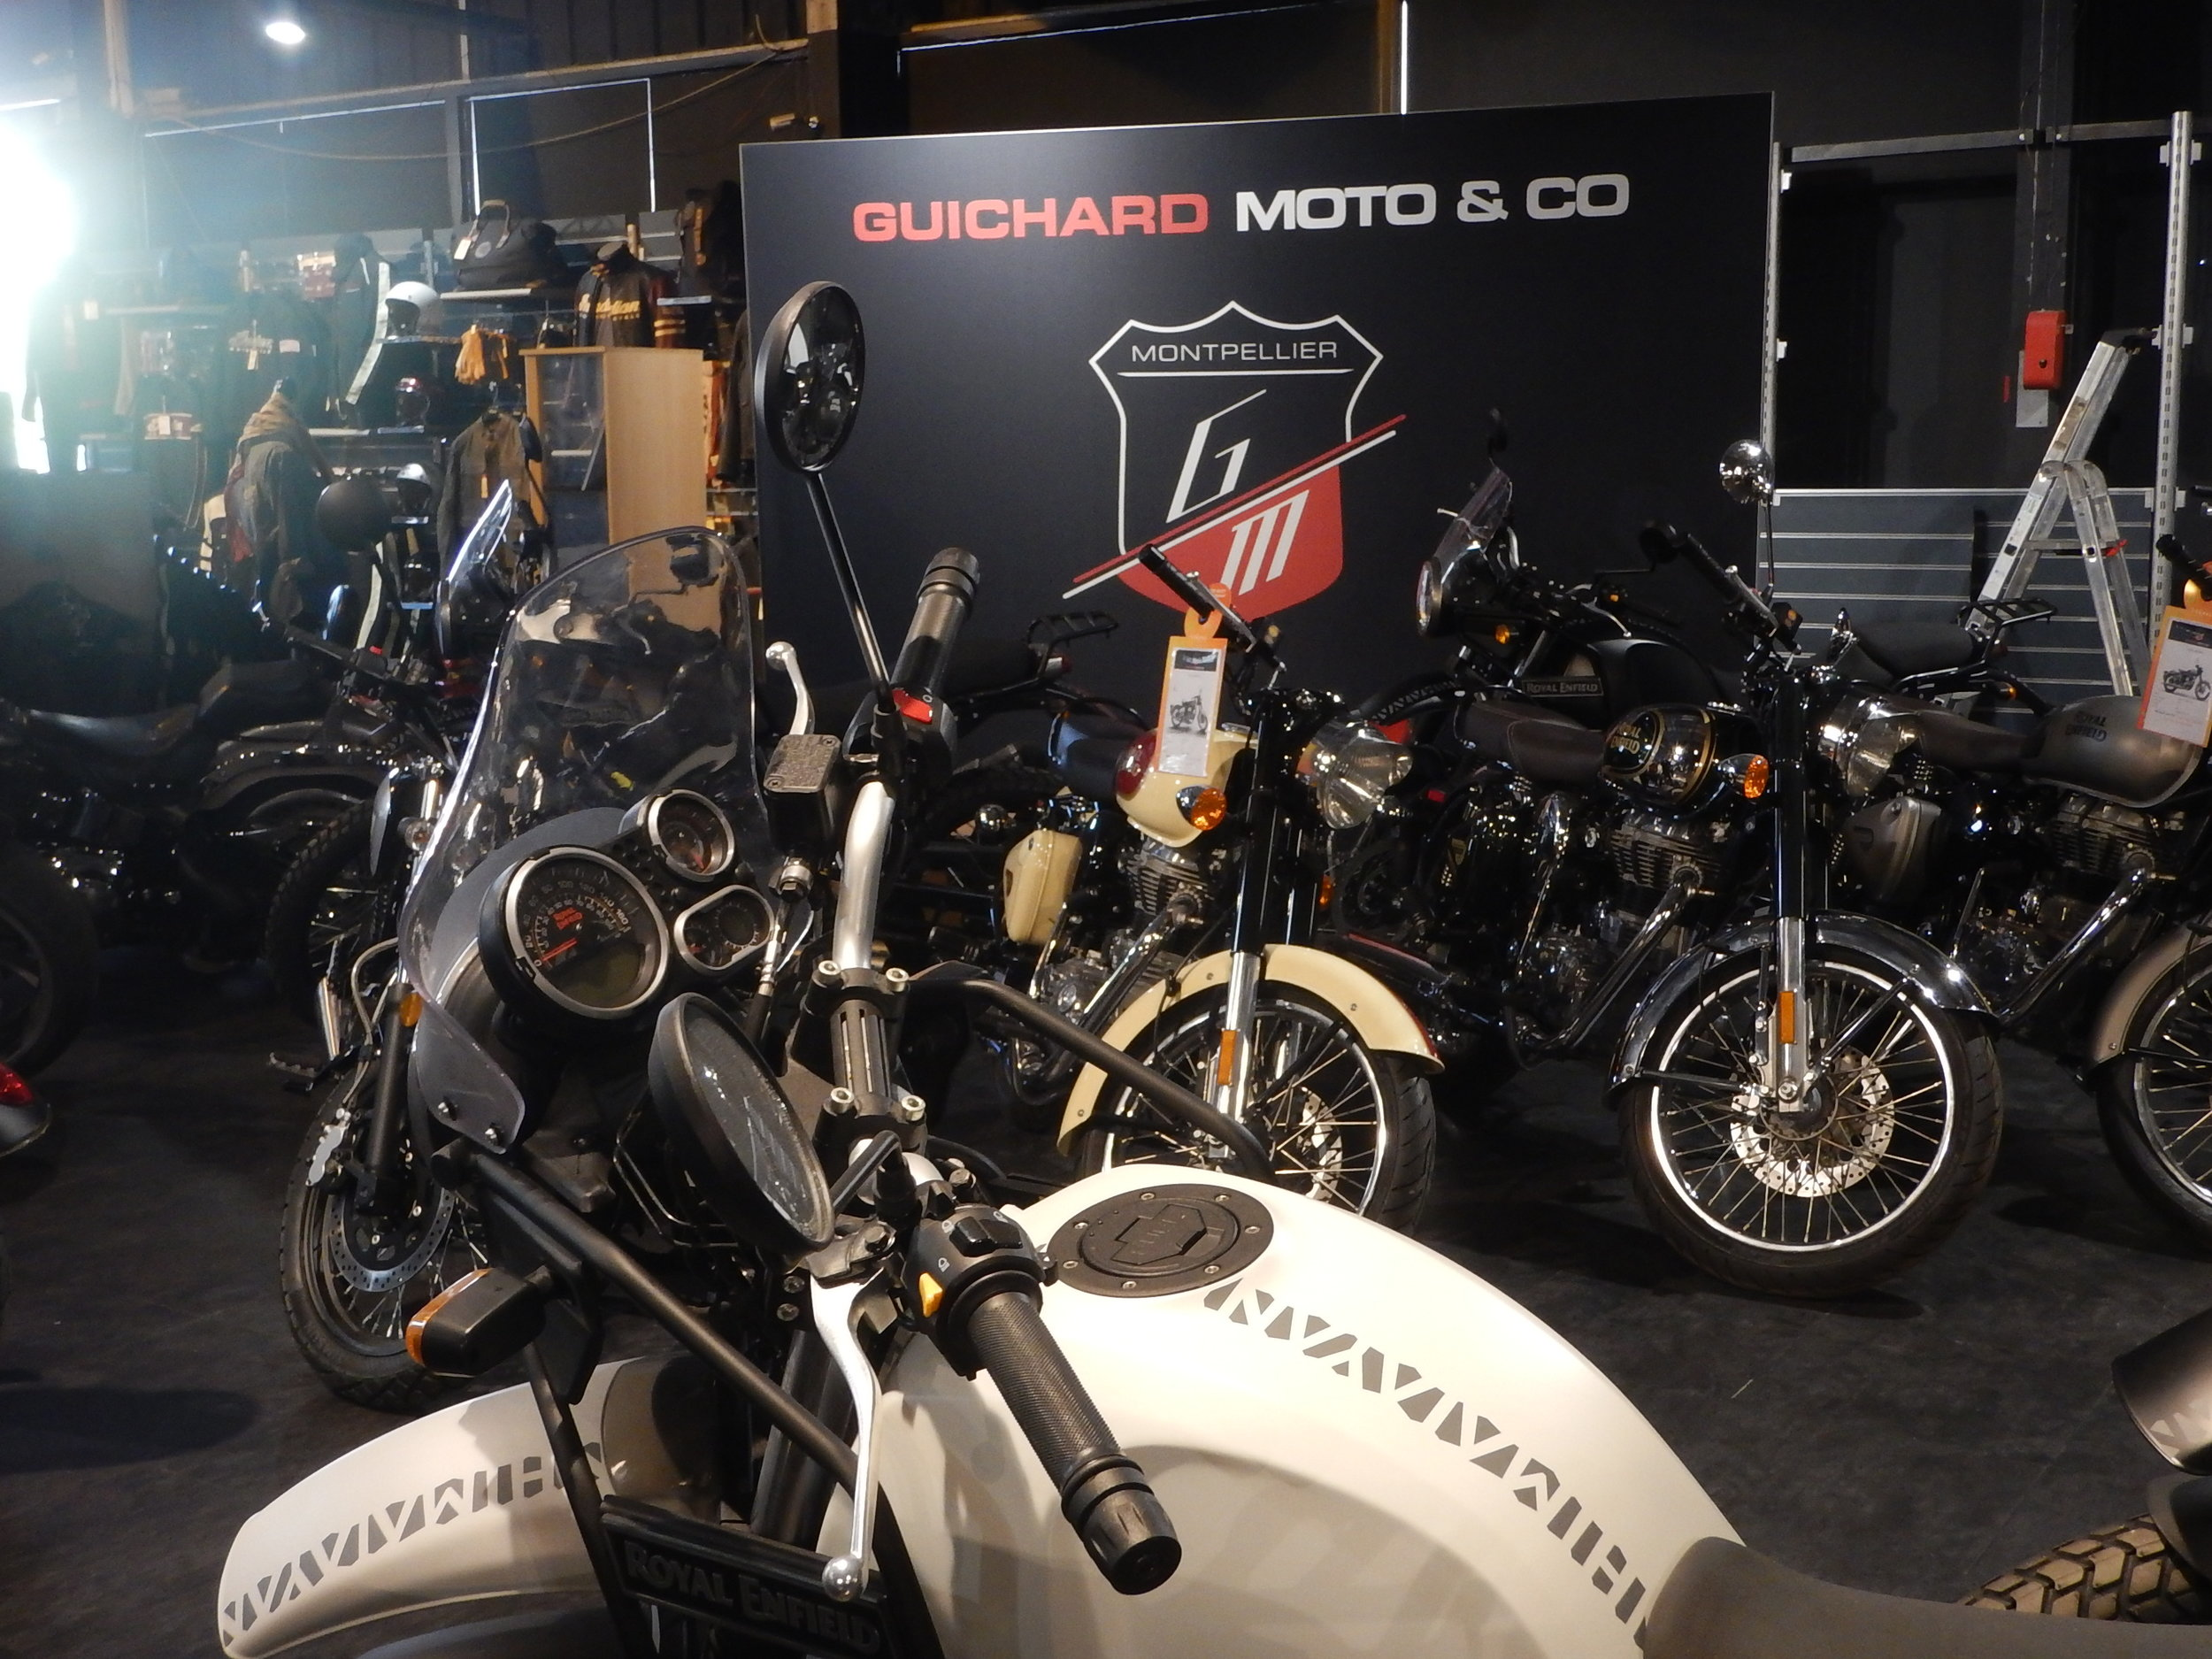 guichard moto in Montpellier, Royal Enfield and IndIAN dealers